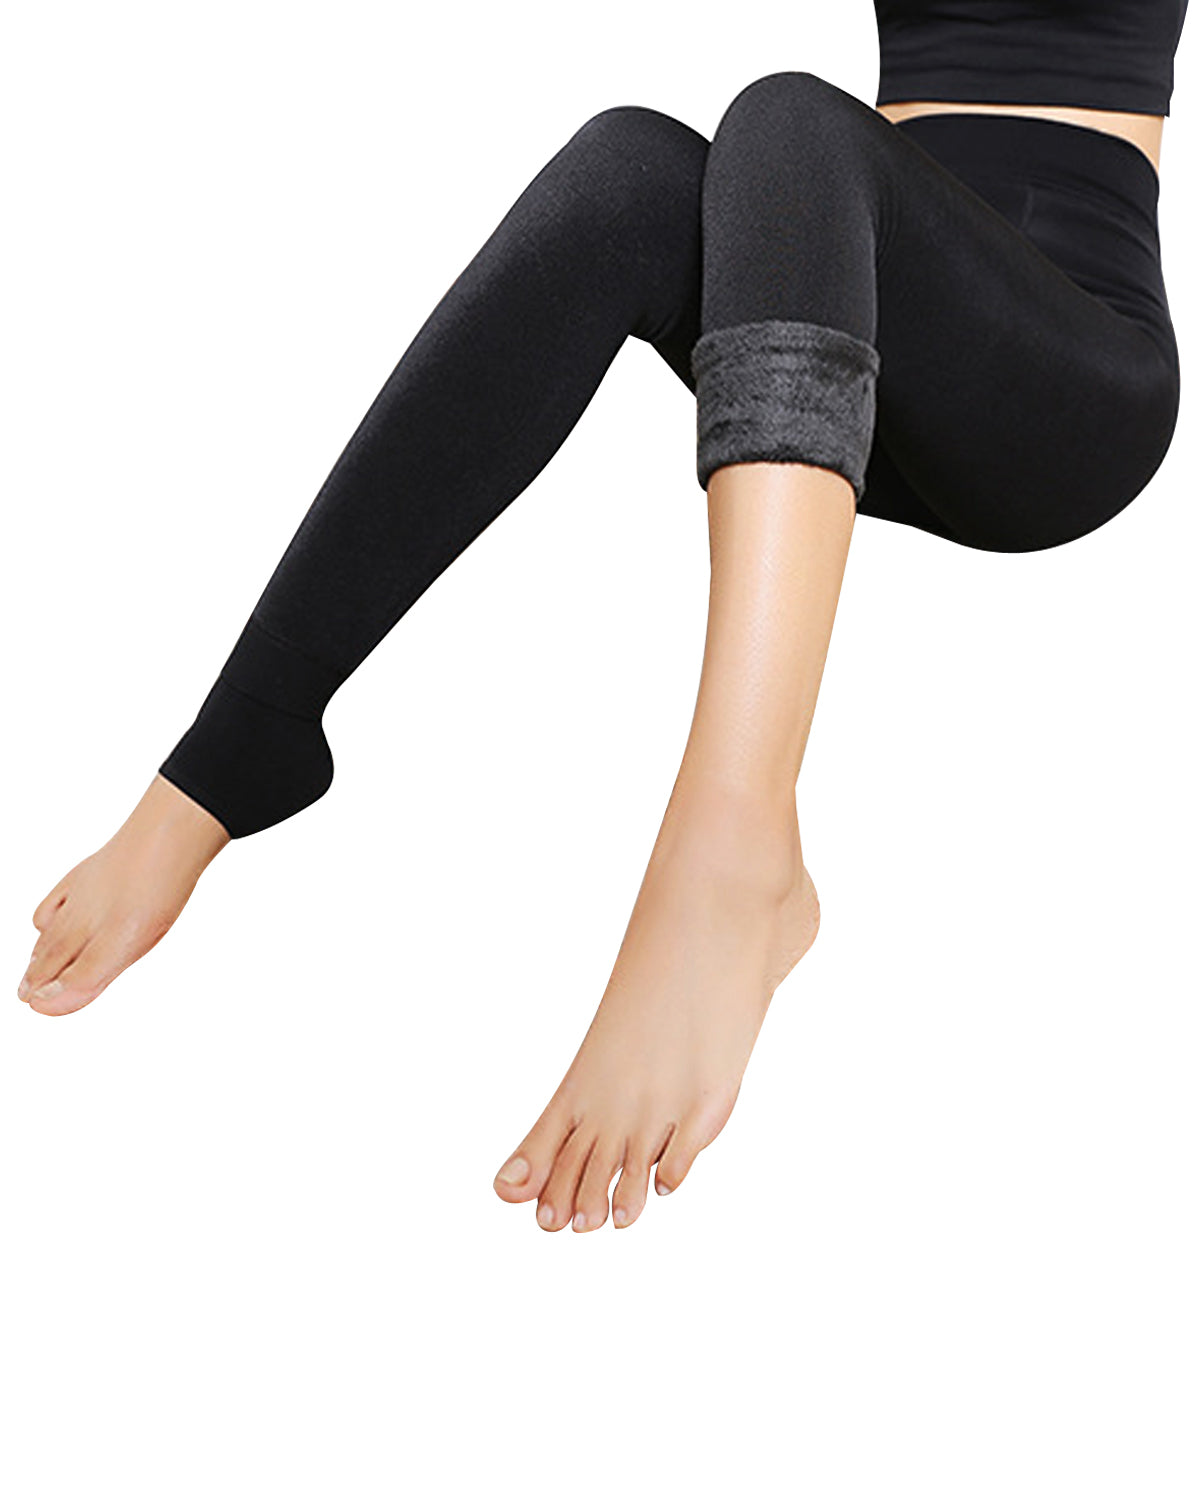 Wrapables® Women's High Waisted Super-Thick Fleece Lined Tights Leggings